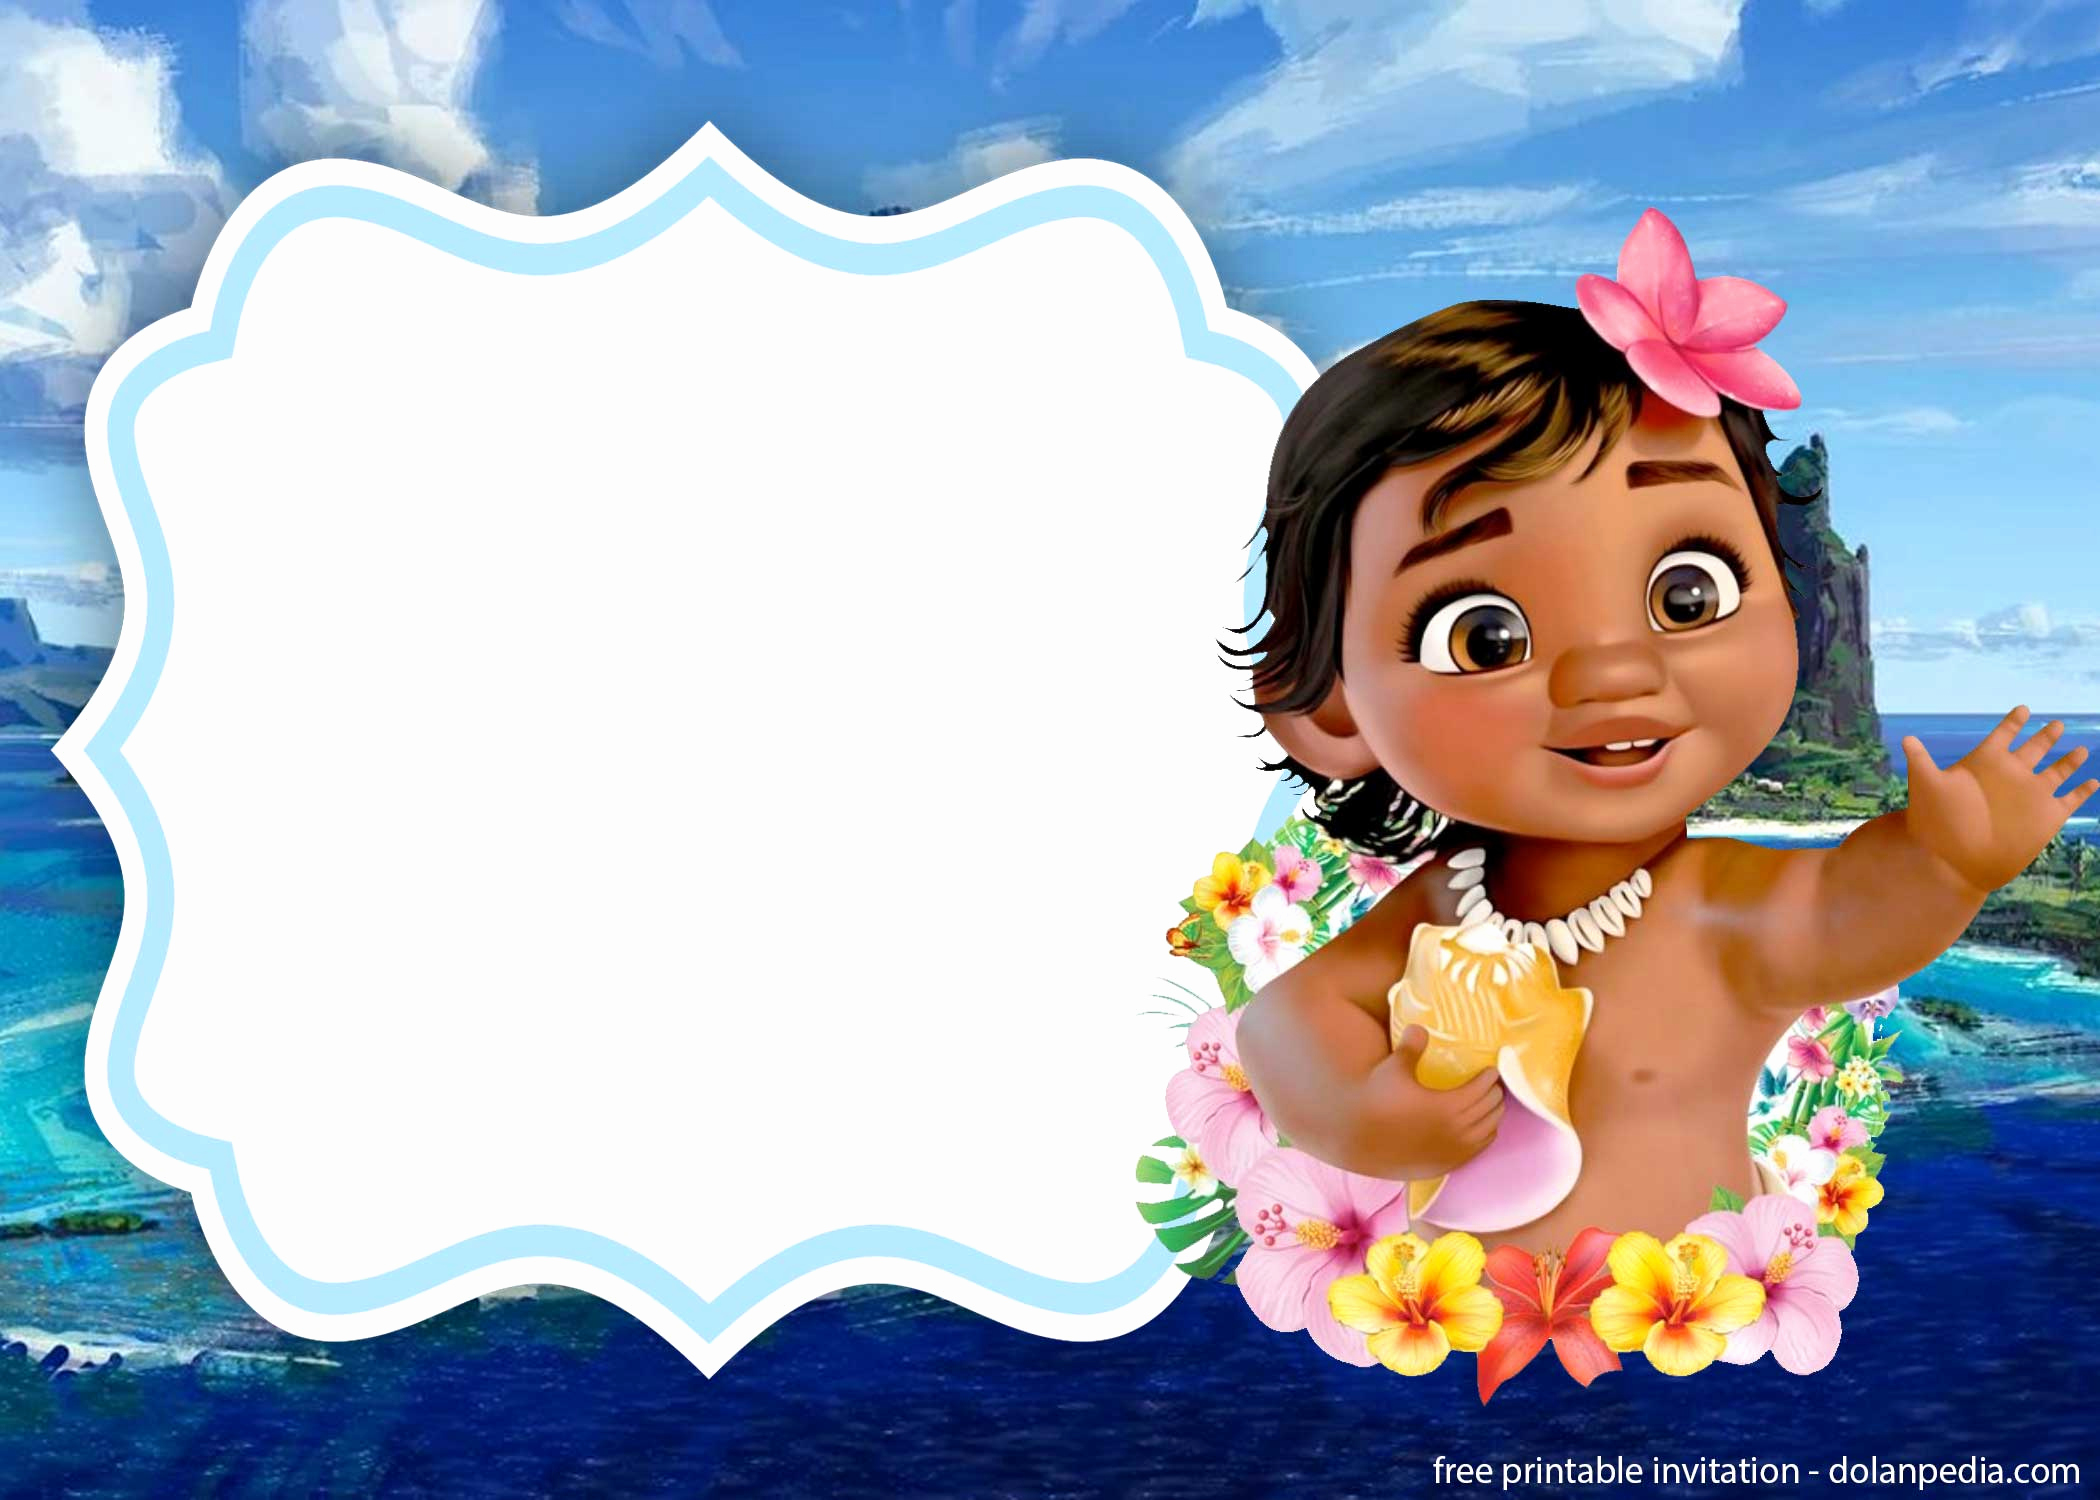 Free Moana Invitation Template Luxury Free Printable Moana Invitation Templates